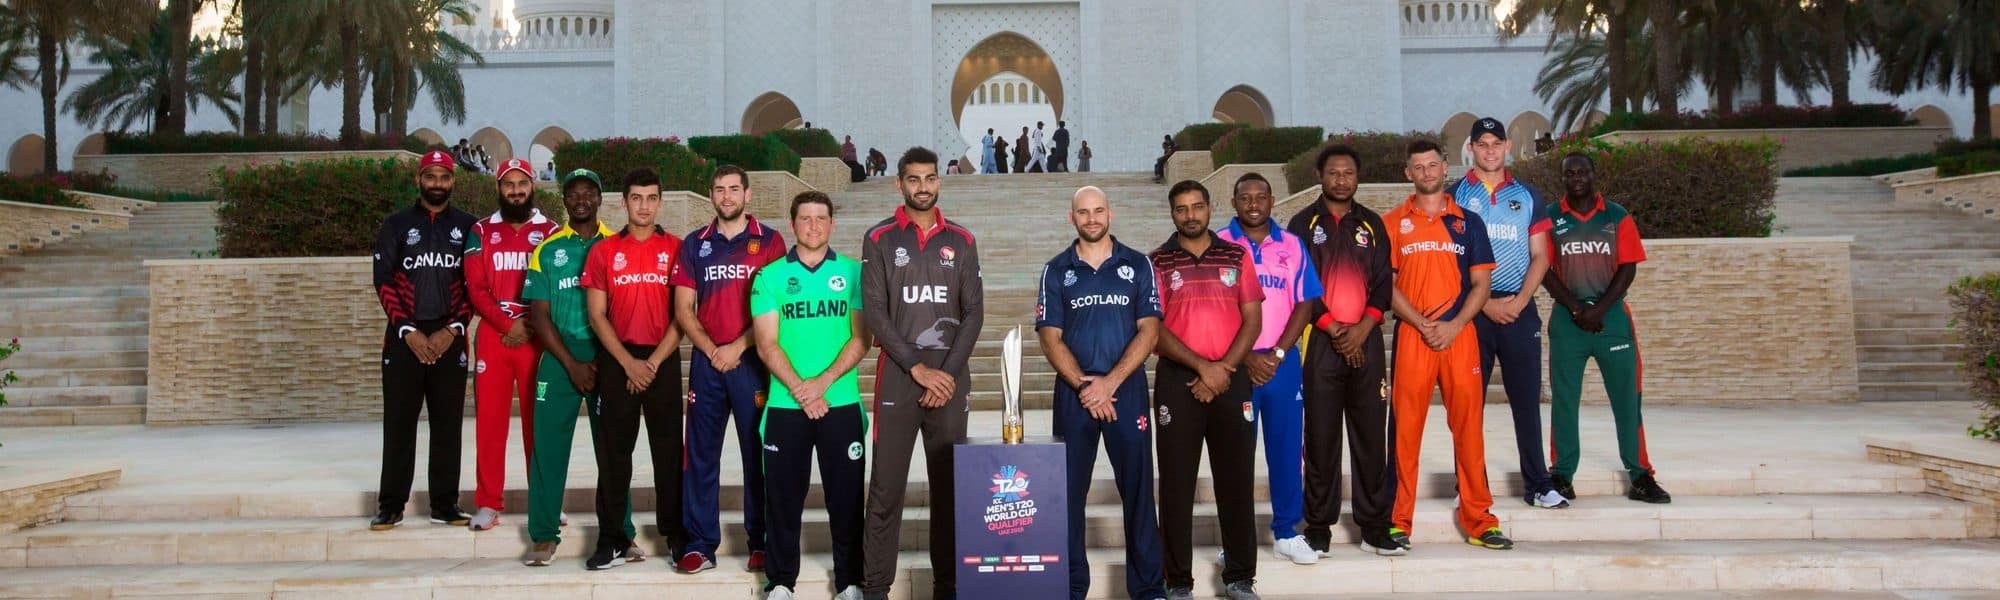 Who Will Win Ireland vs Oman 16th T20 Match Prediction?